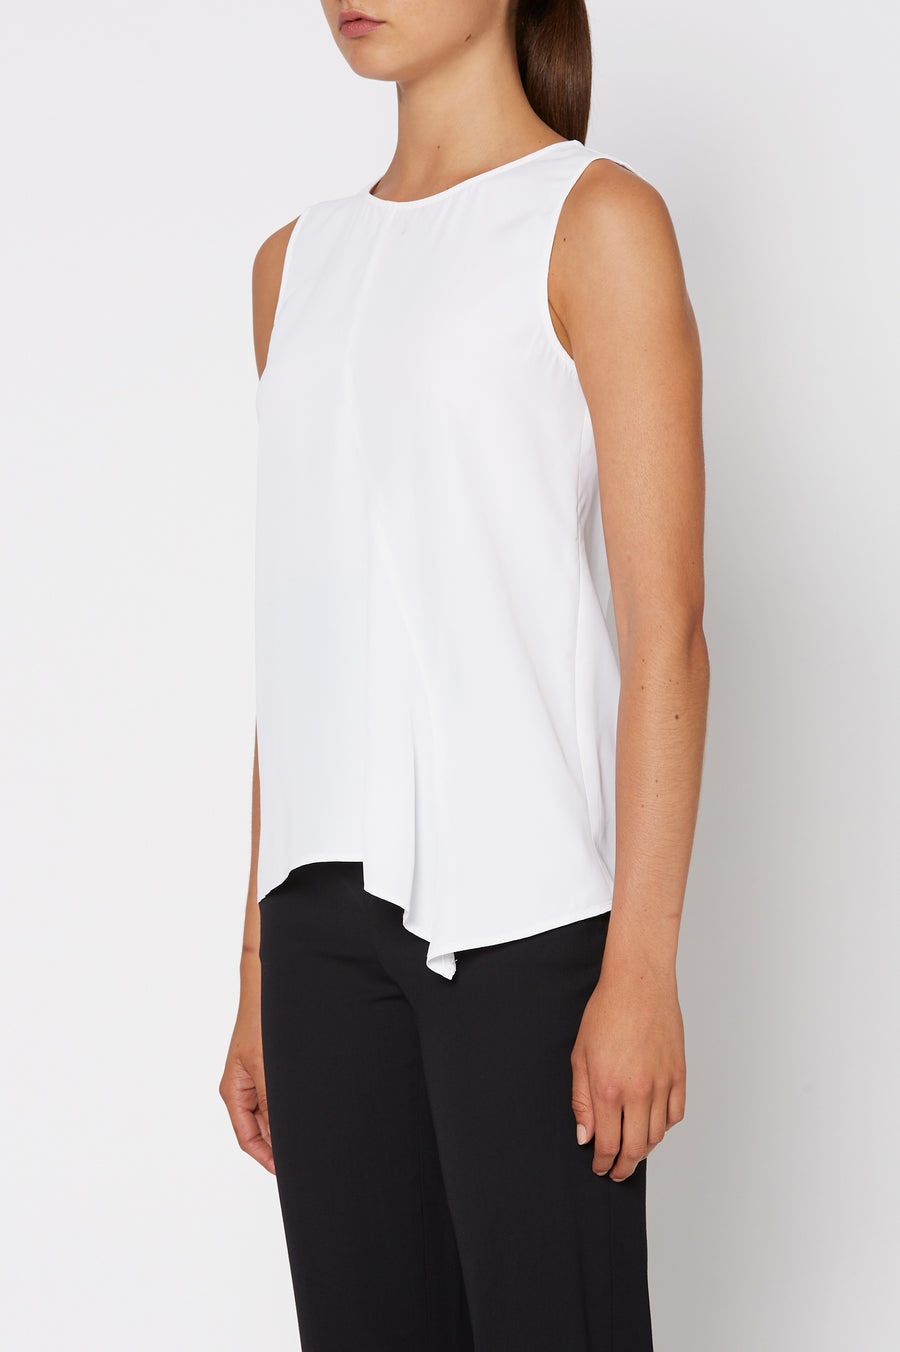 POWDERED VISCOSE TOP, front drape, short sleeve, crew neck, WHITE color